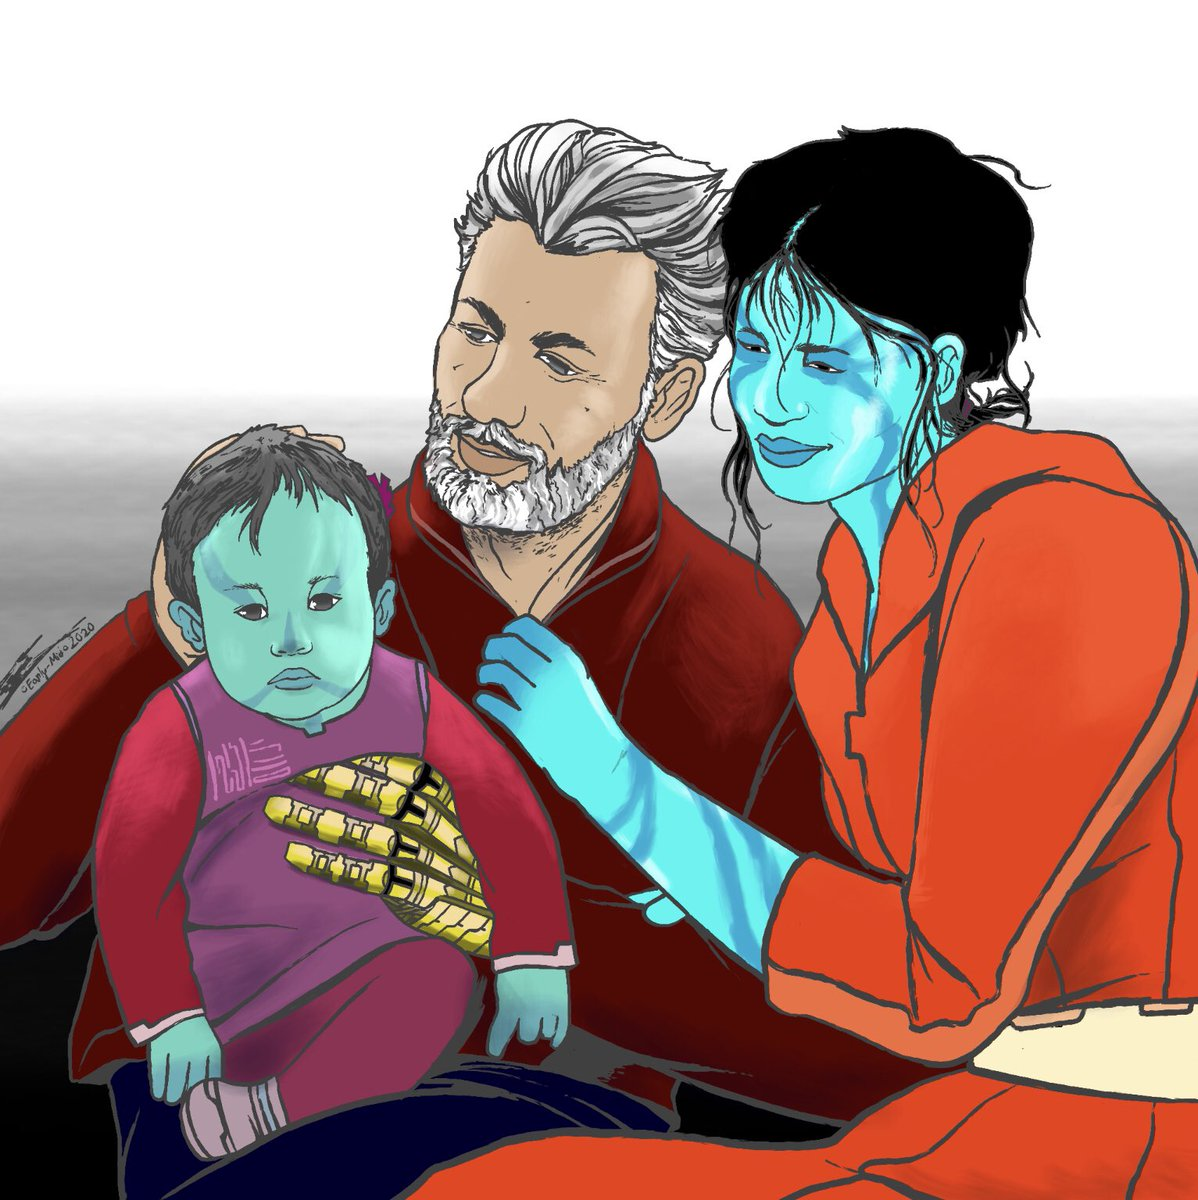 This is a family drawing of my characters from Firebrand; Saten San, Djala Anq, and their daughter Gil Samack. #seppukucomics #seppukucomic #comics #comicartist #familypicture #alien #characterdesign #scifi #scificomics #comicart #artistontwitterpic.twitter.com/8HL55uIiCb